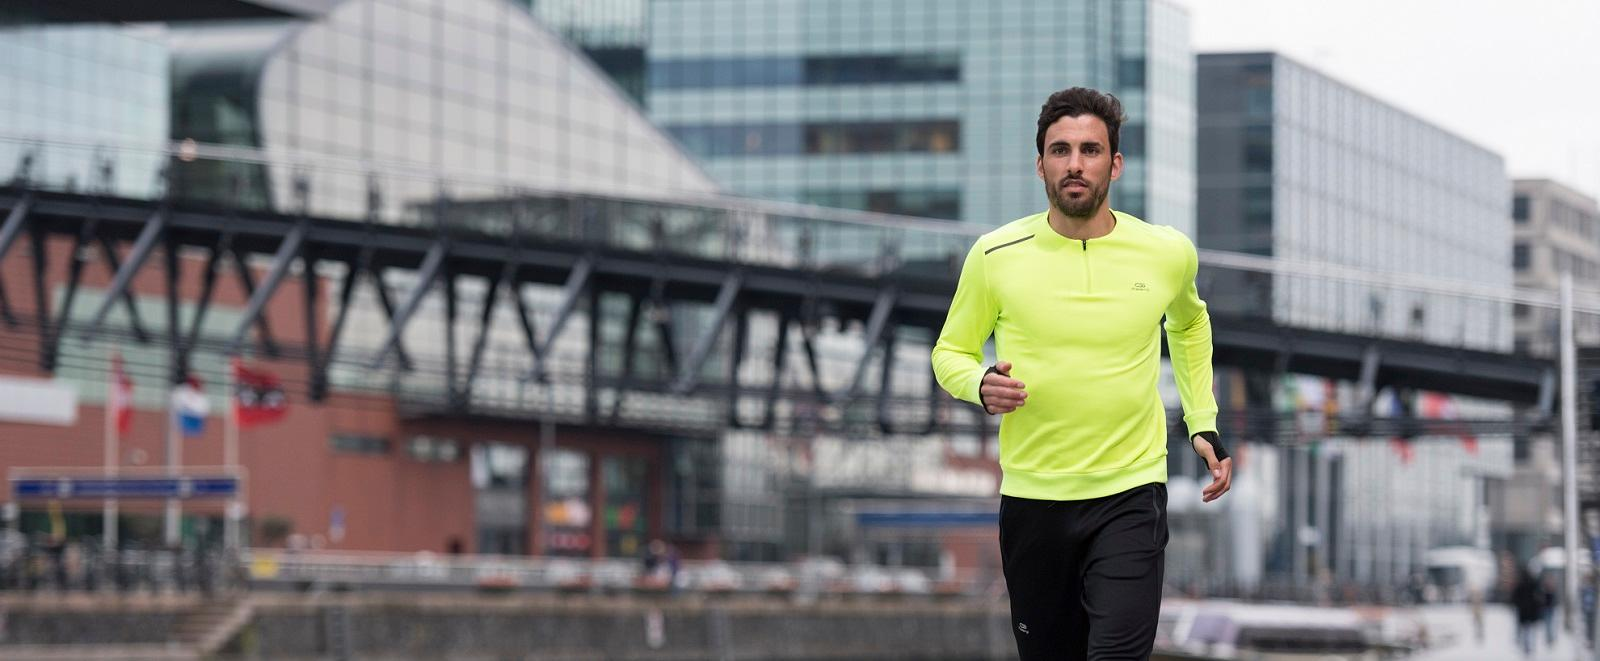 4 Ways to Extend the Time You Spend Running